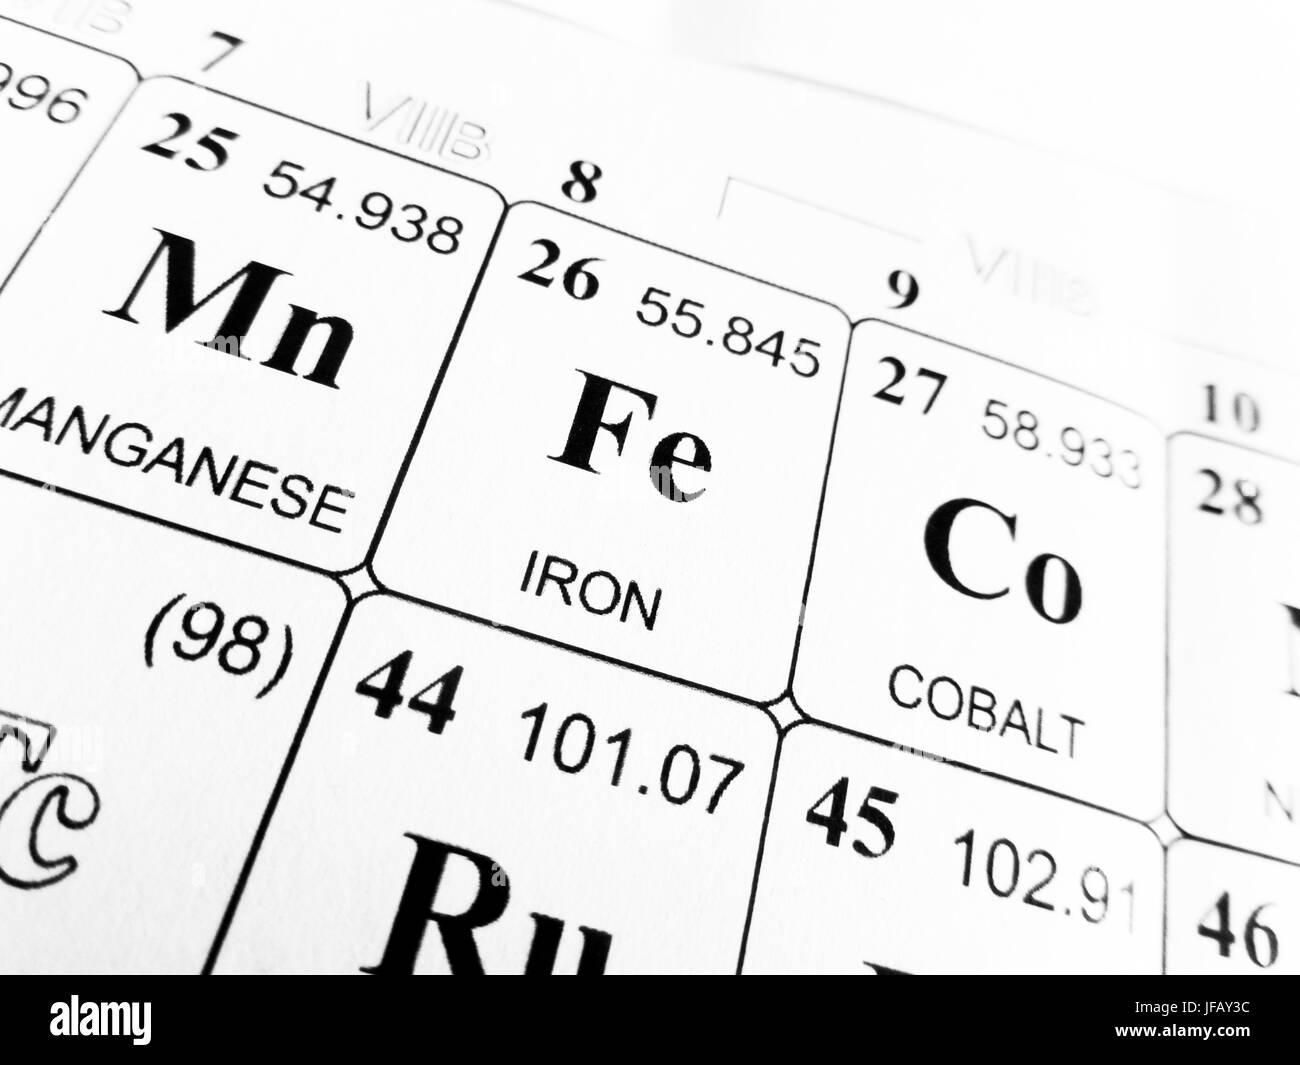 Periodic table of elements iron gallery periodic table images symbol for iron on periodic table choice image periodic table images fe iron periodic table gallery gamestrikefo Choice Image